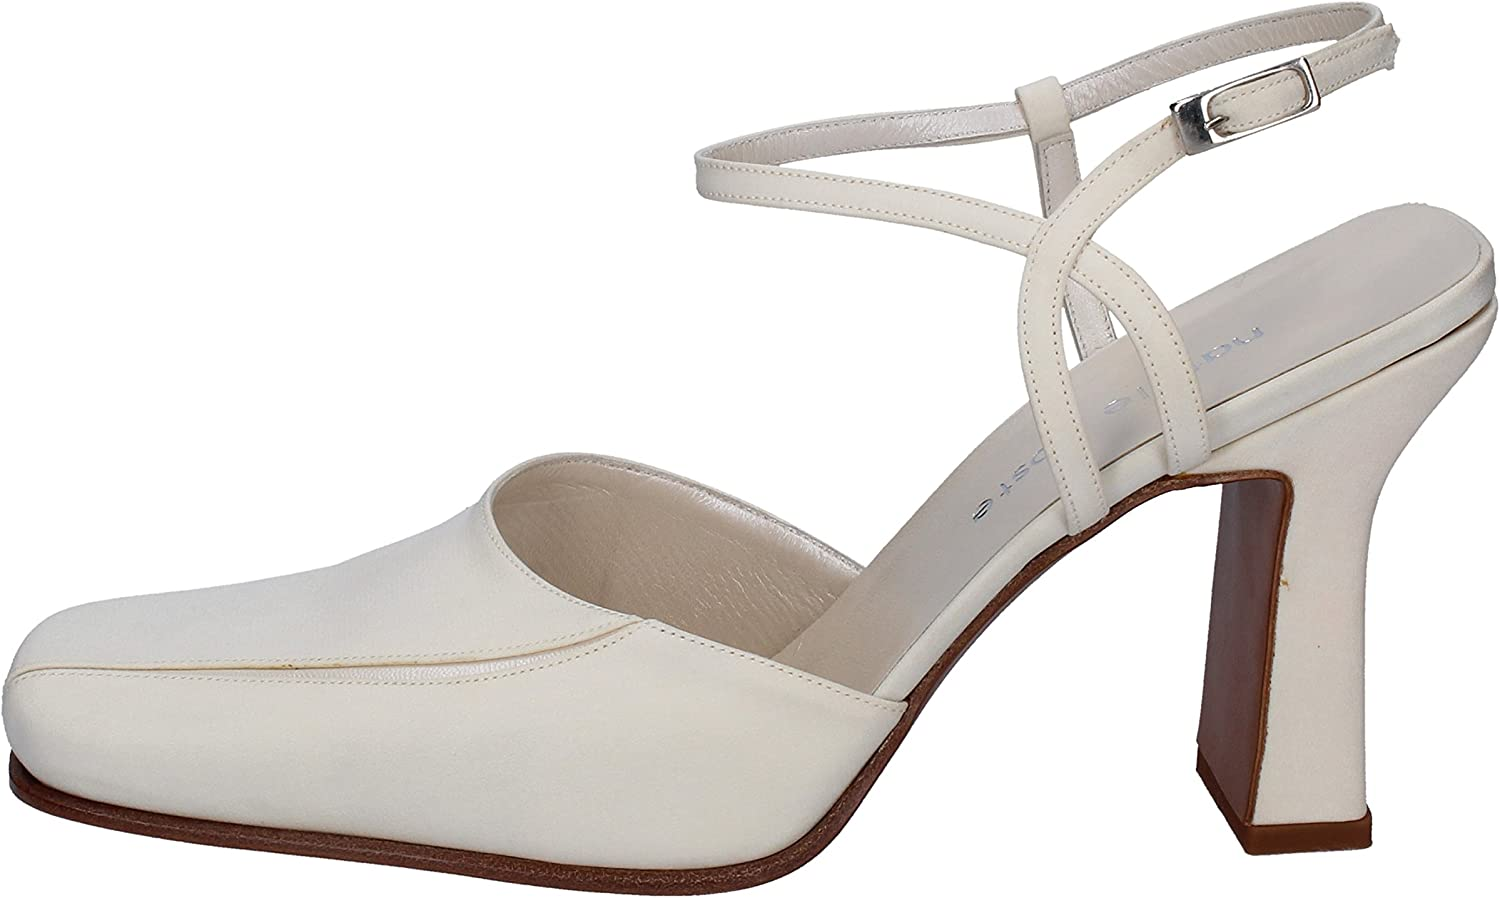 NATALE COSTE Pumps-shoes Womens Leather White 10 US